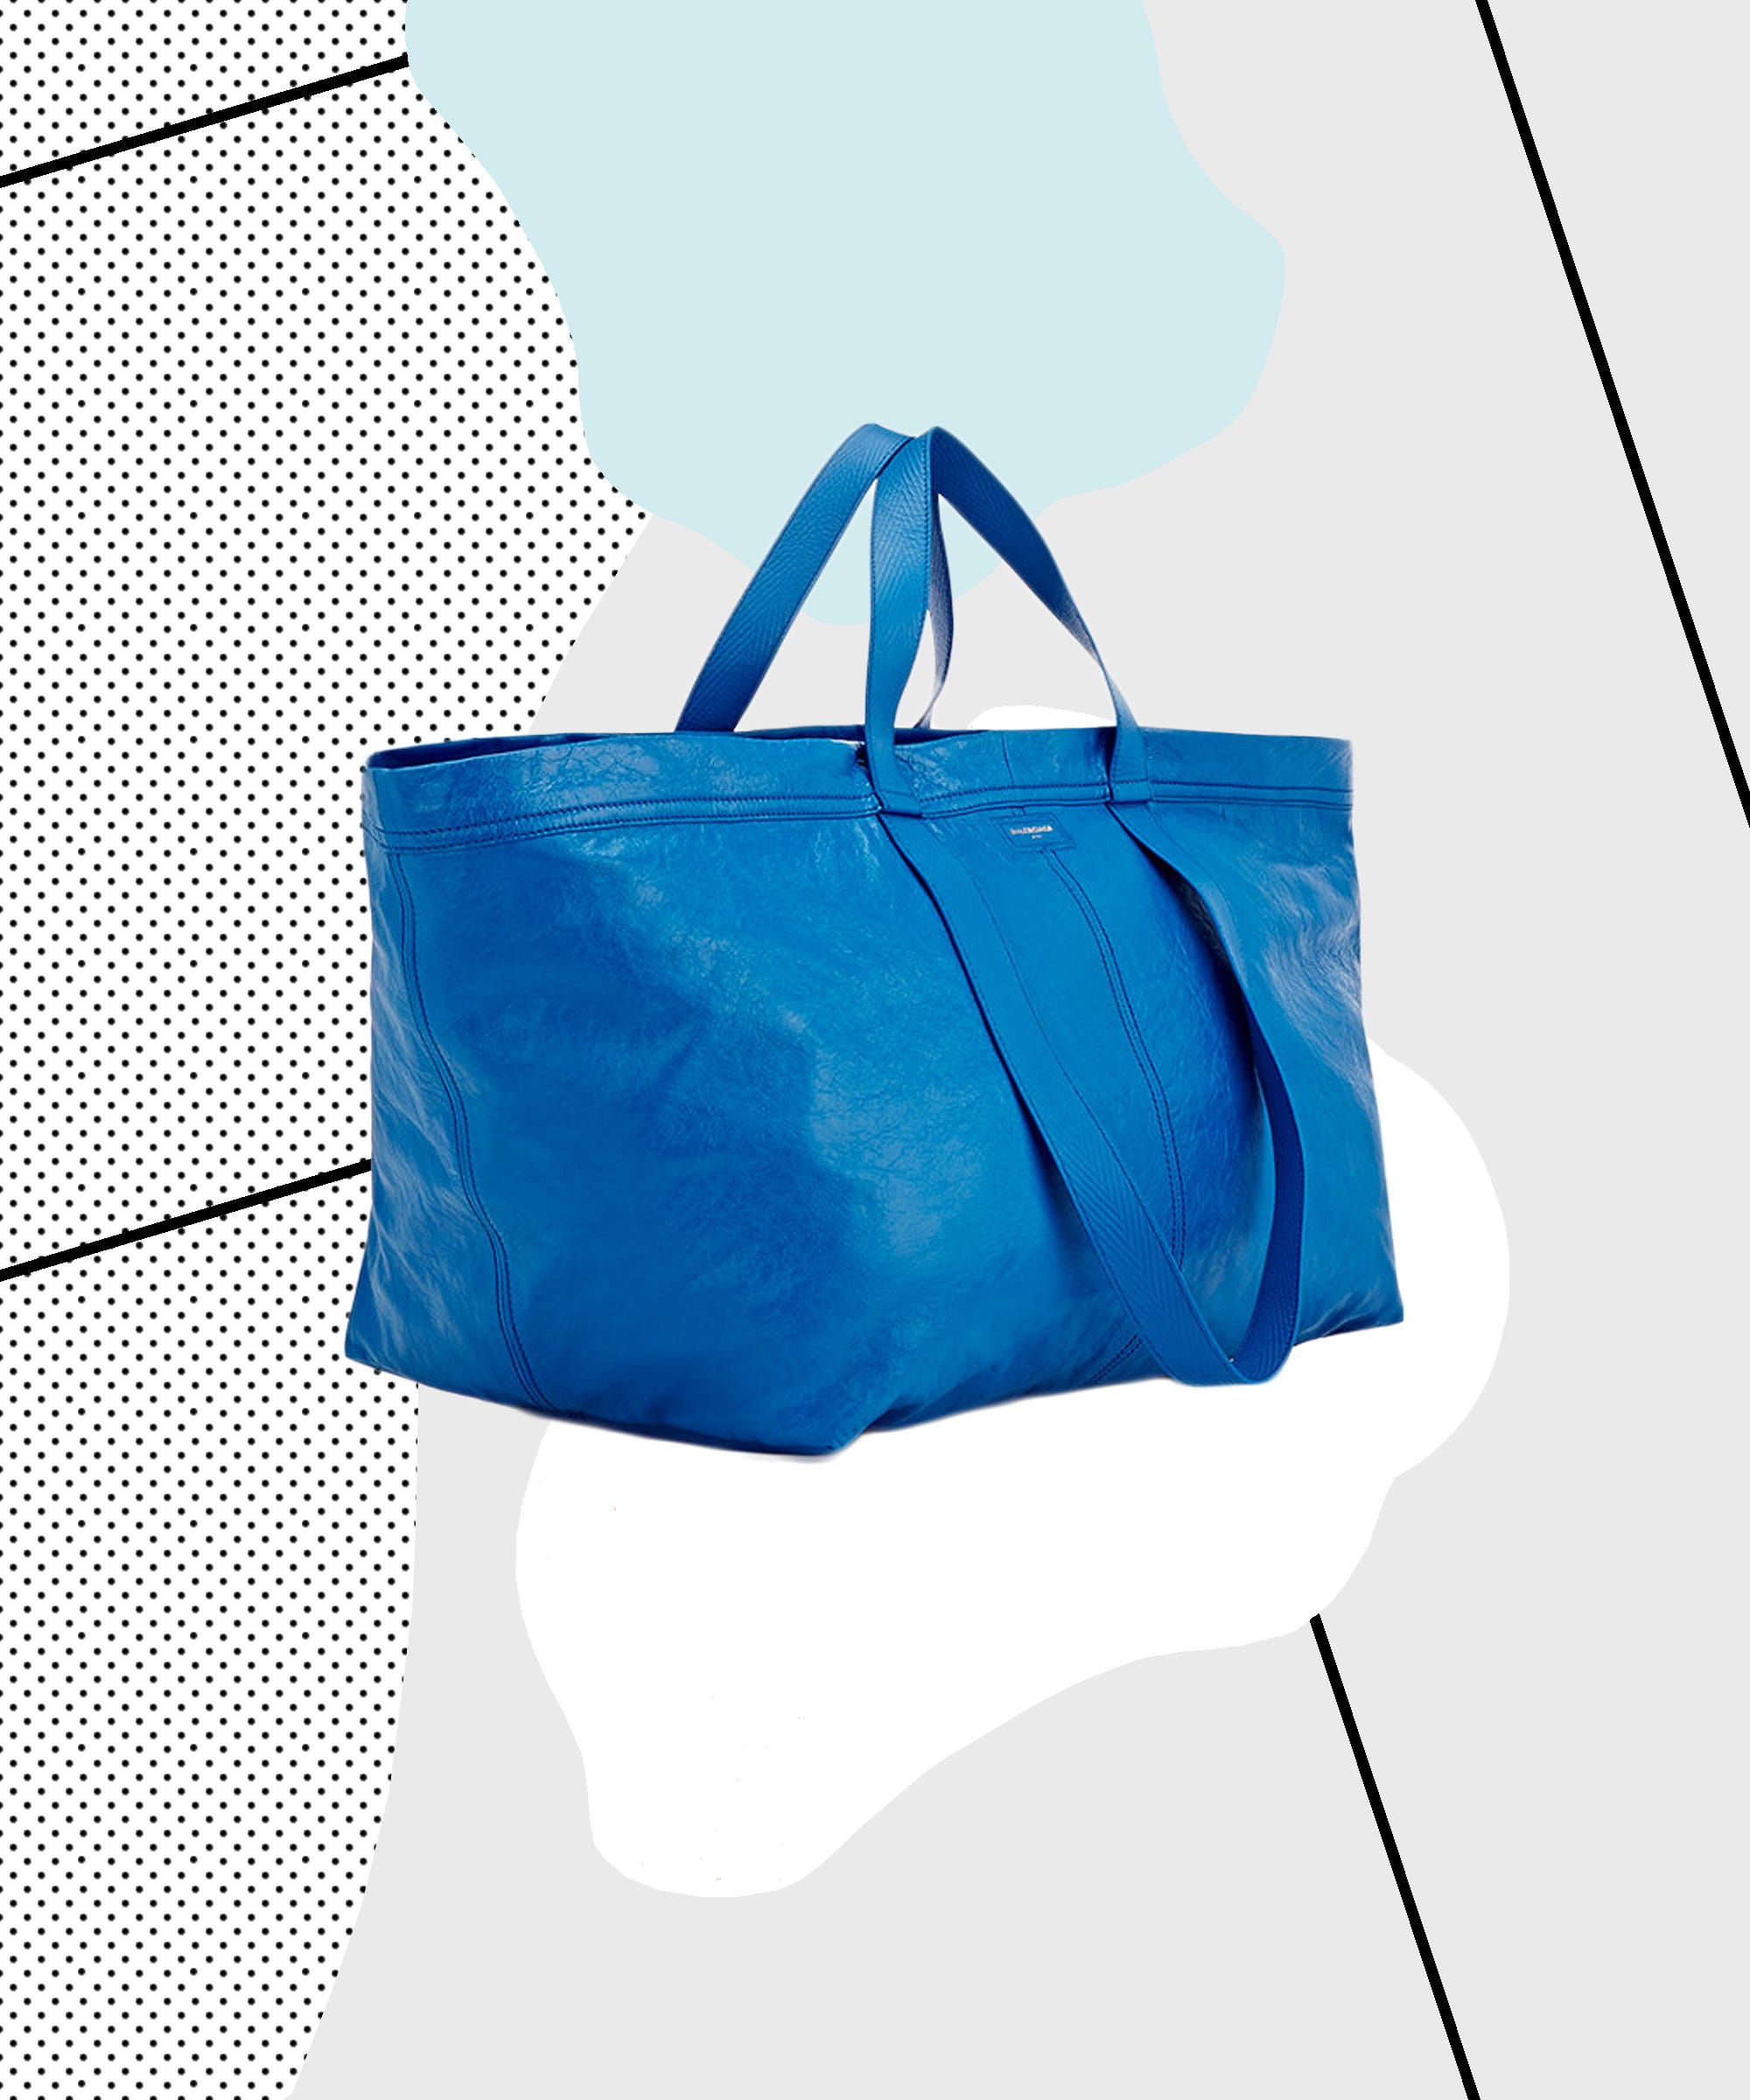 This $2145 tote looks just like a 99-cent Ikea bag